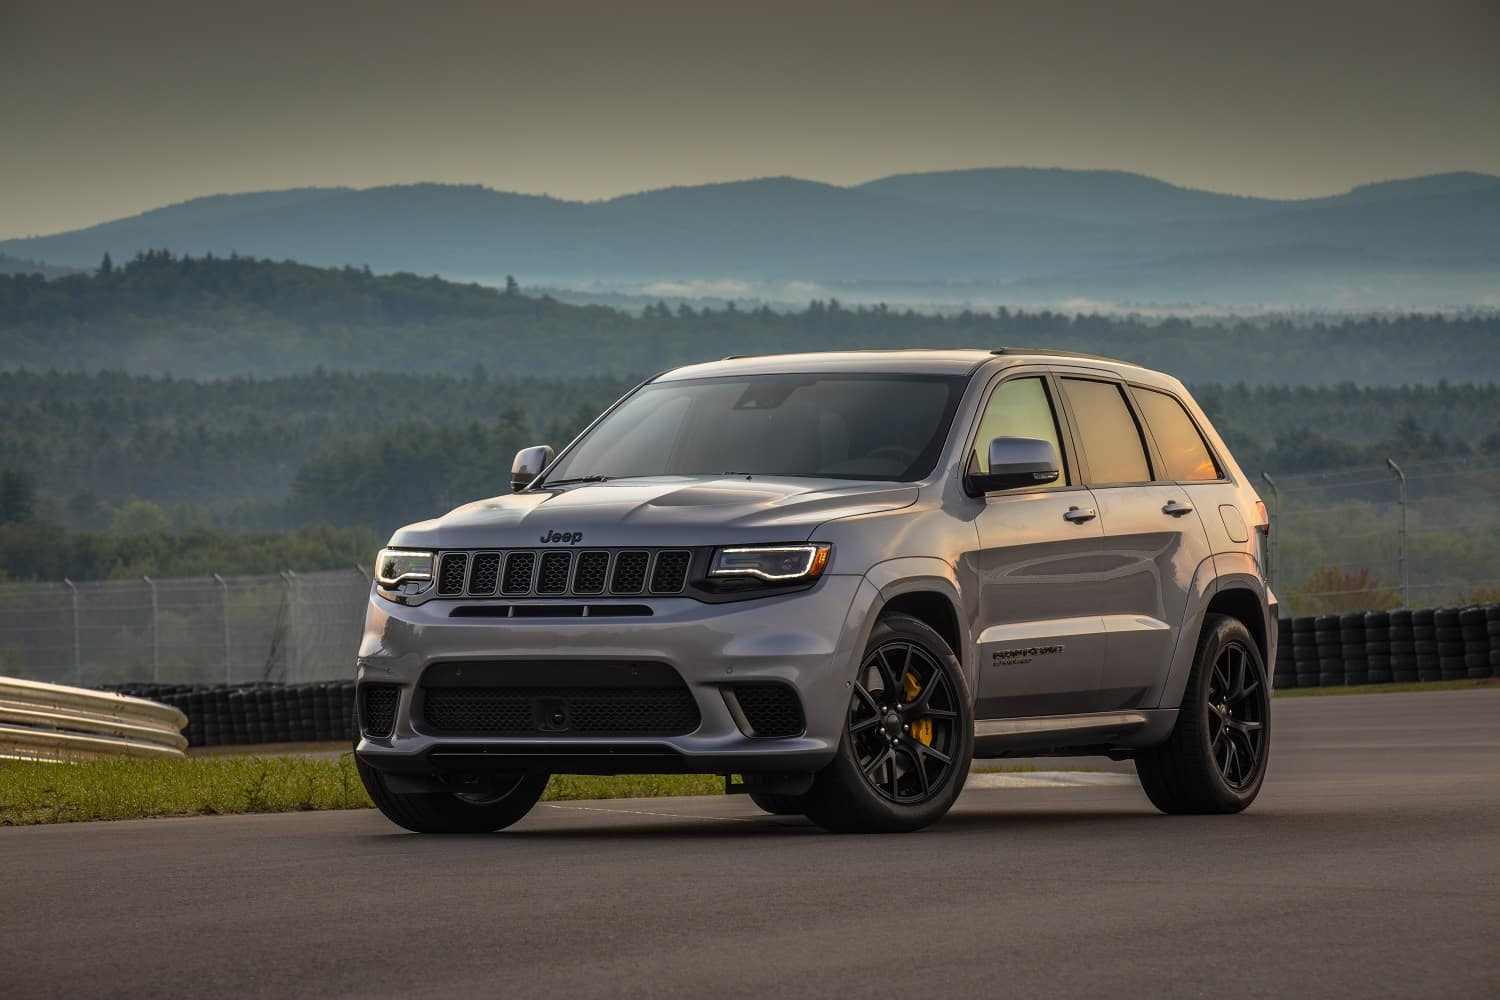 2019 Jeep Grand Cherokee Billet Silver